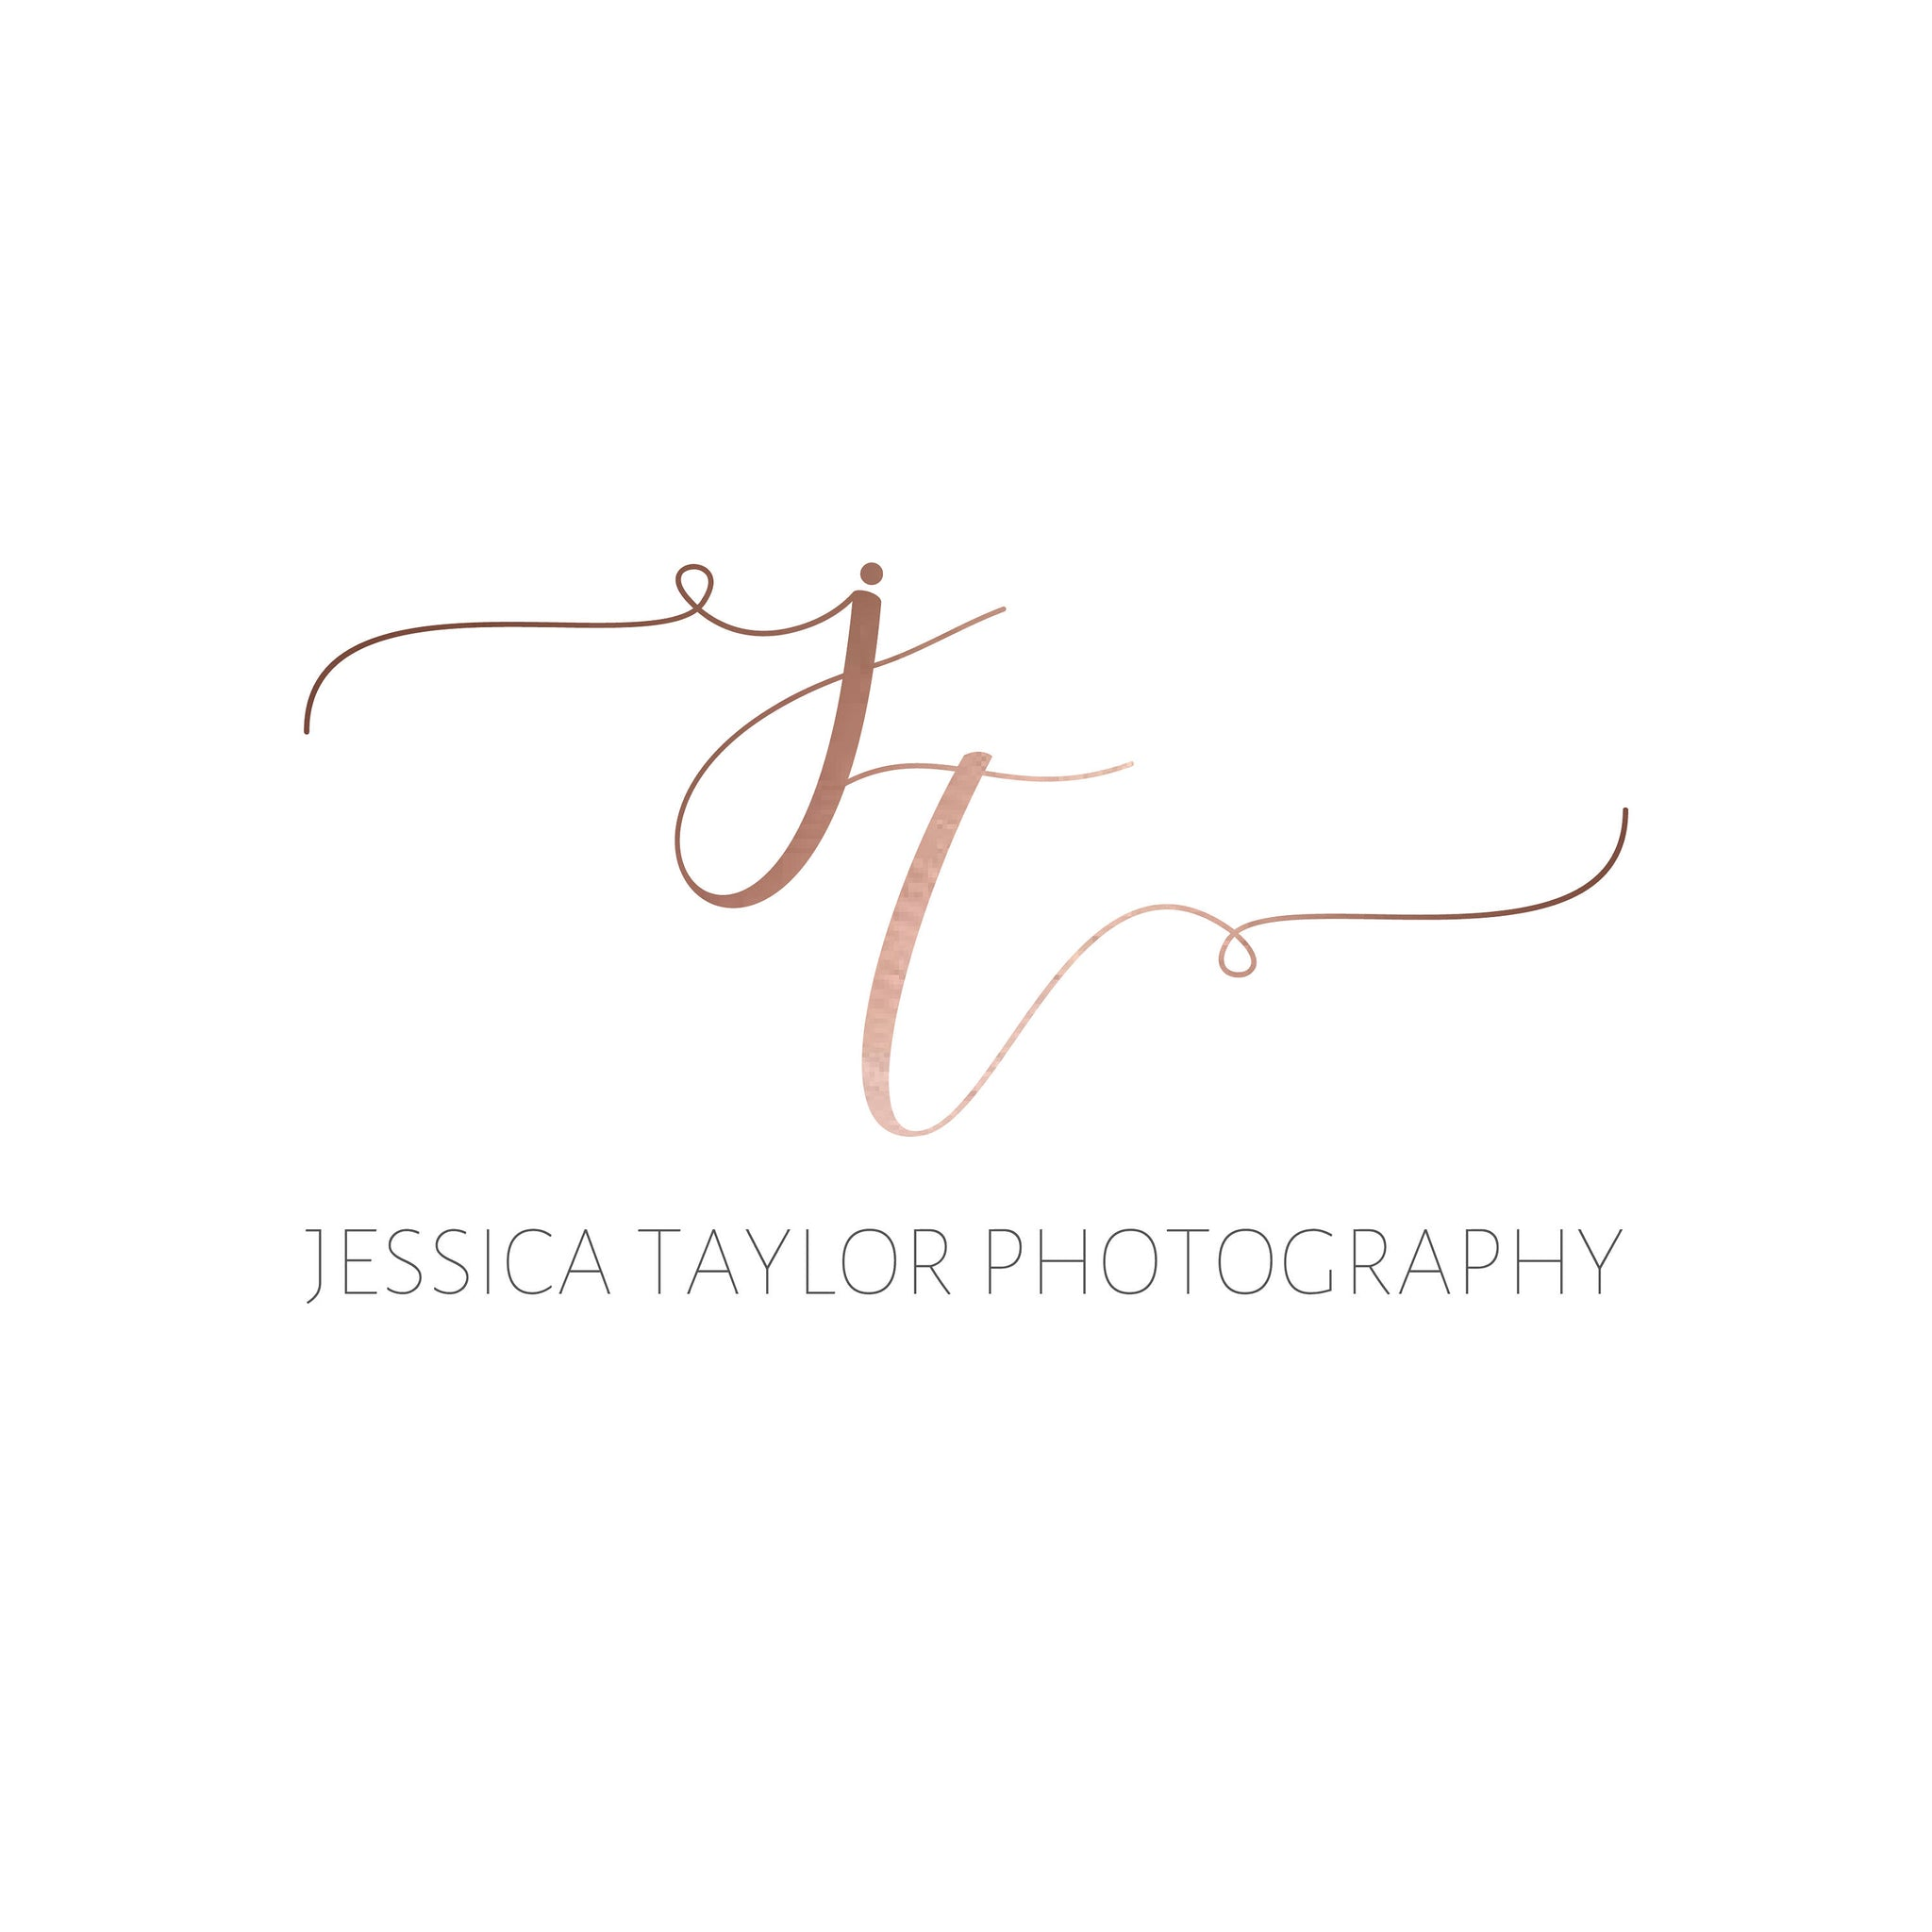 Rose Gold Logo - Calligraphy Logo - Initials Logo - Small Business Personal Logo Watermark